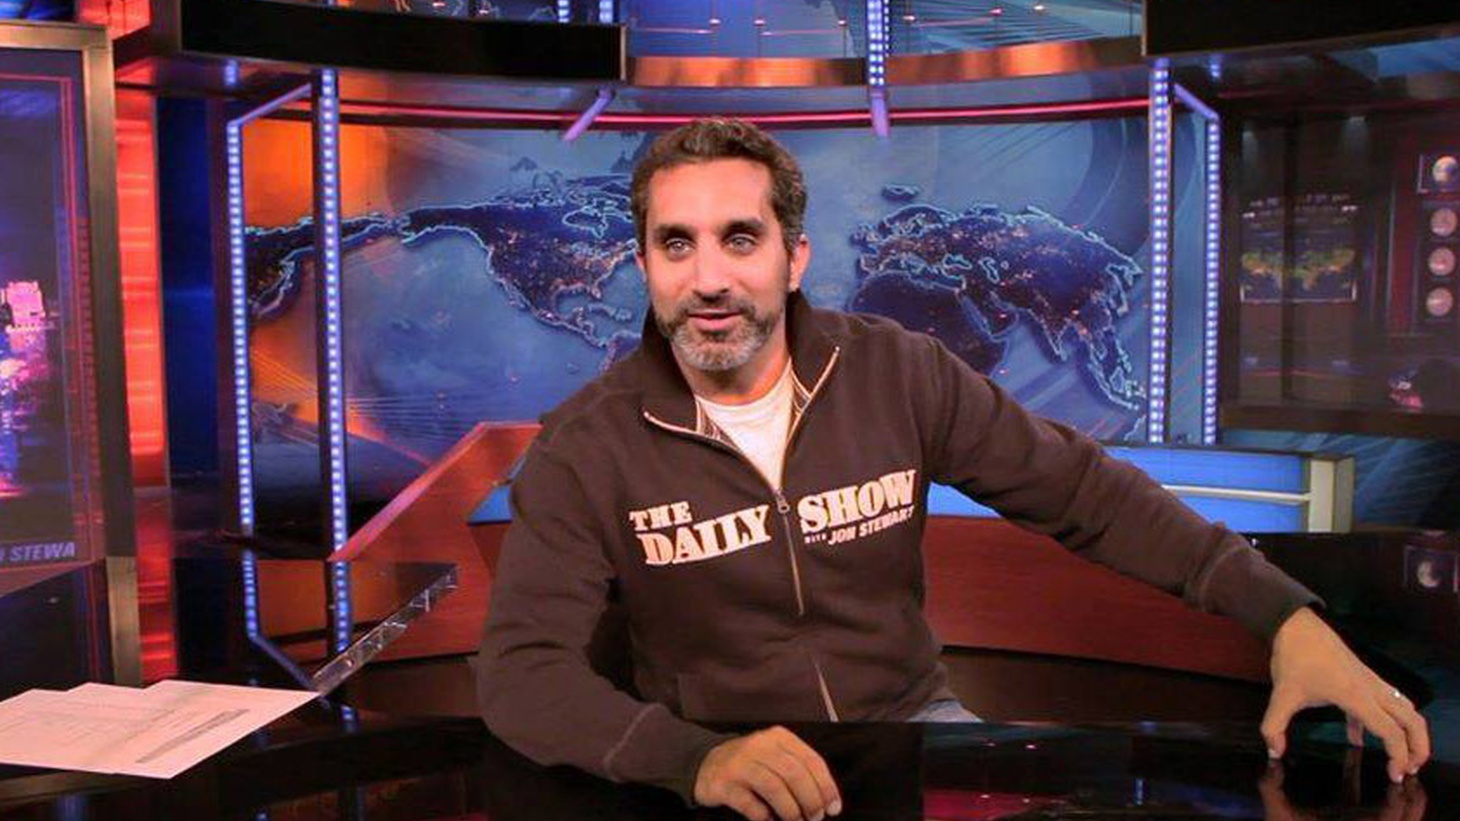 """Known as the """"Jon Stewart of Egypt,"""" Bassem Youssef hosted a satirical news show that was the first of its kind in the Middle East. The show was immensely popular, until the military-backed government forced Youssef off the air and out of the country. Youssef and director Sara Taksler tell us about their documentary Tickling Giants, which profiles Youssef's leap from heart surgeon to super star satirist."""